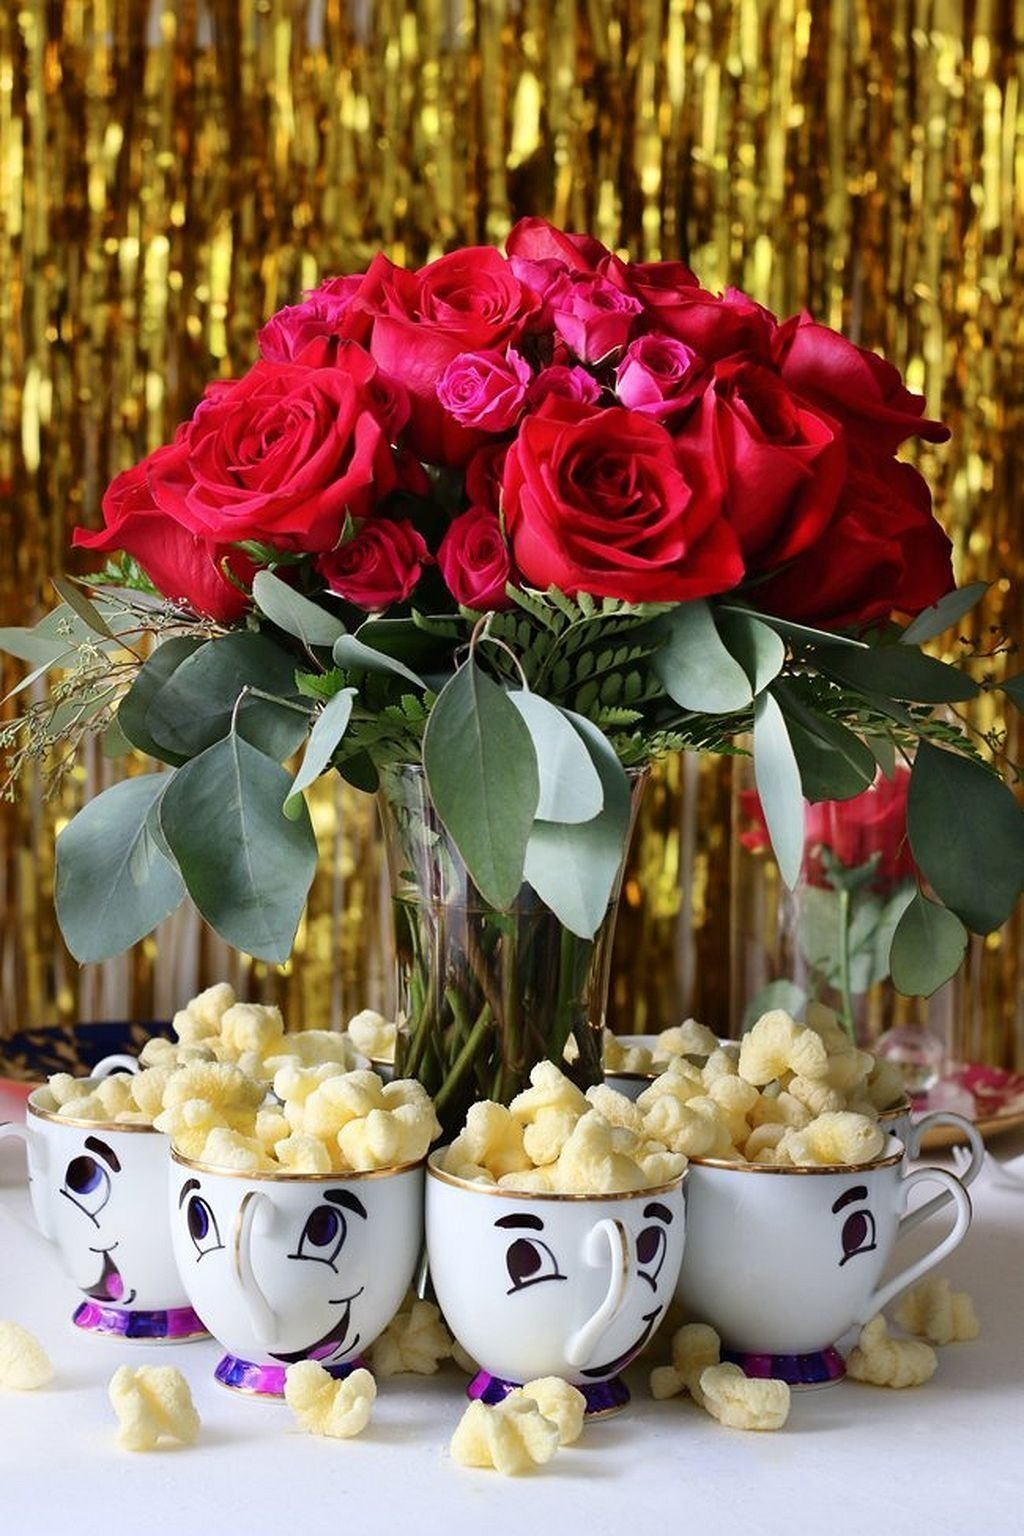 10 Gorgeous Beauty And The Beast Wedding Theme Ideas 80 beauty and the beast wedding ideas 22 beast wedding and wedding 2020